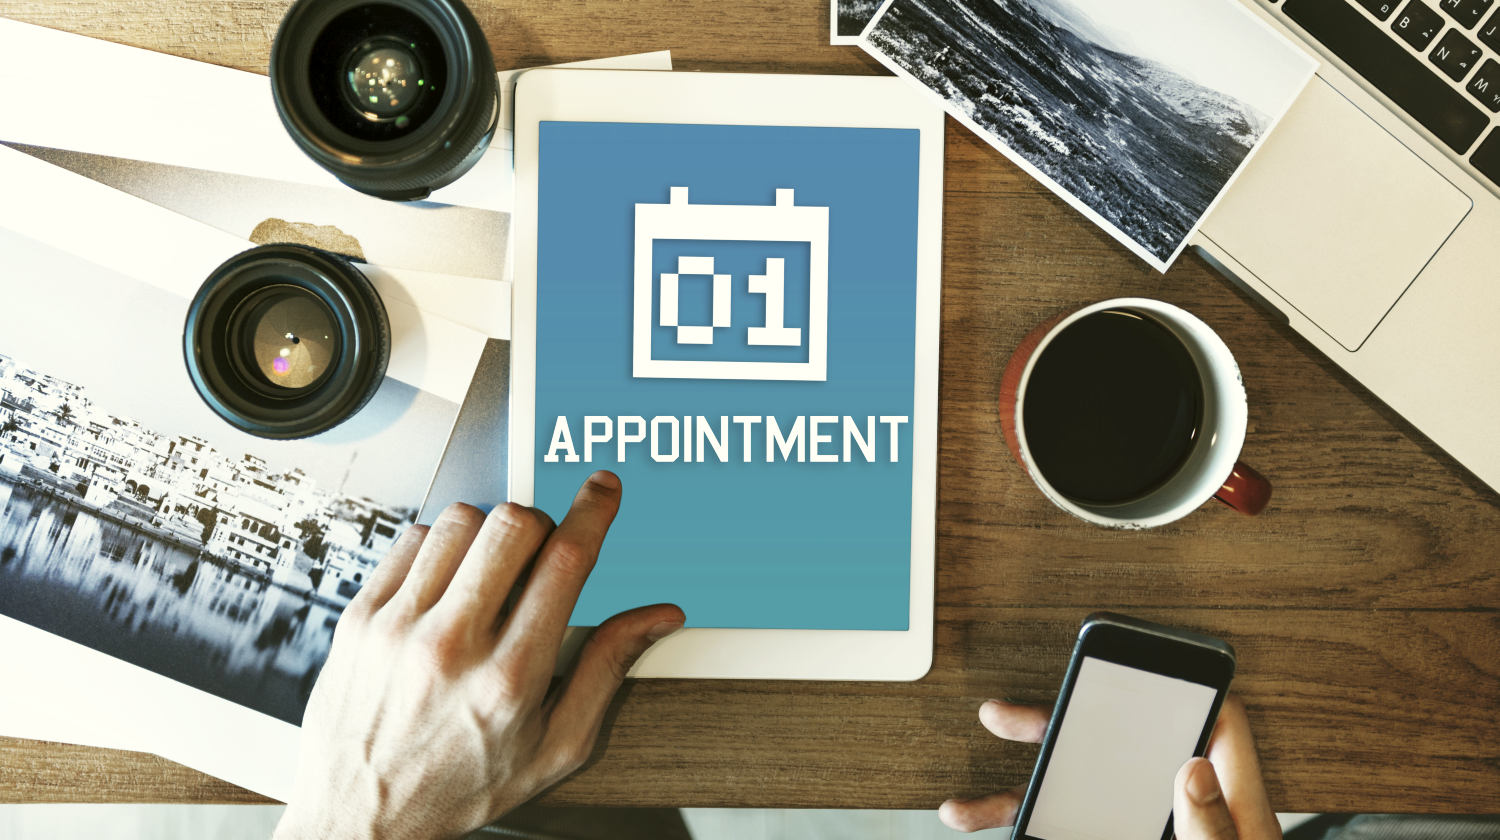 Calendar Appointment Meeting Reminder Events | Time Management Apps: How To Manage Your Time Better | best schedule app | Featured